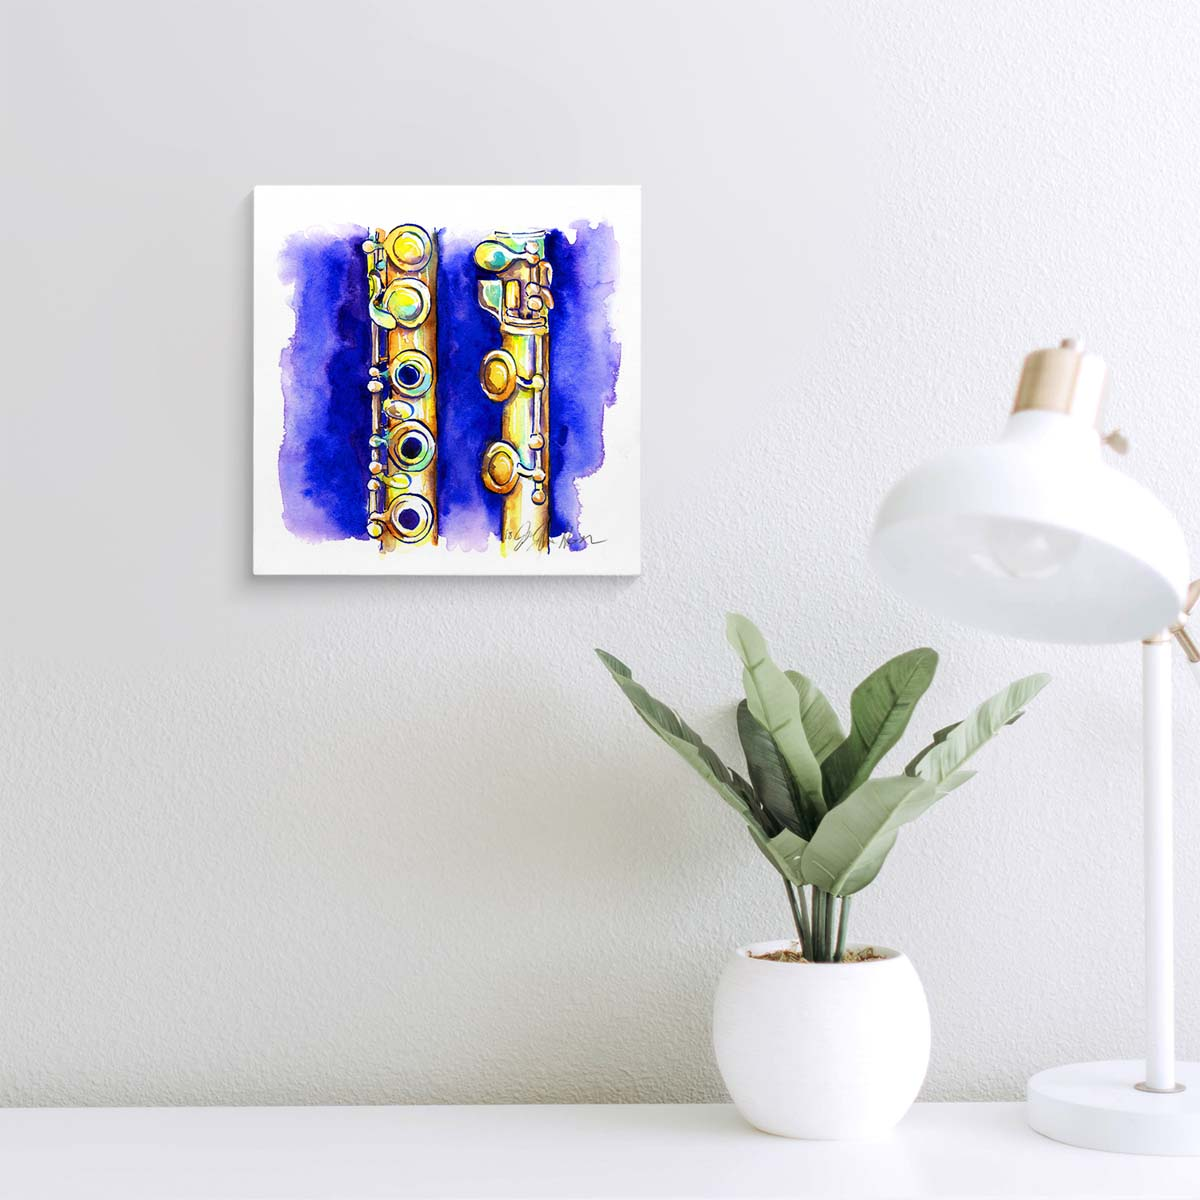 Blue and gold painting of a flute on a wall